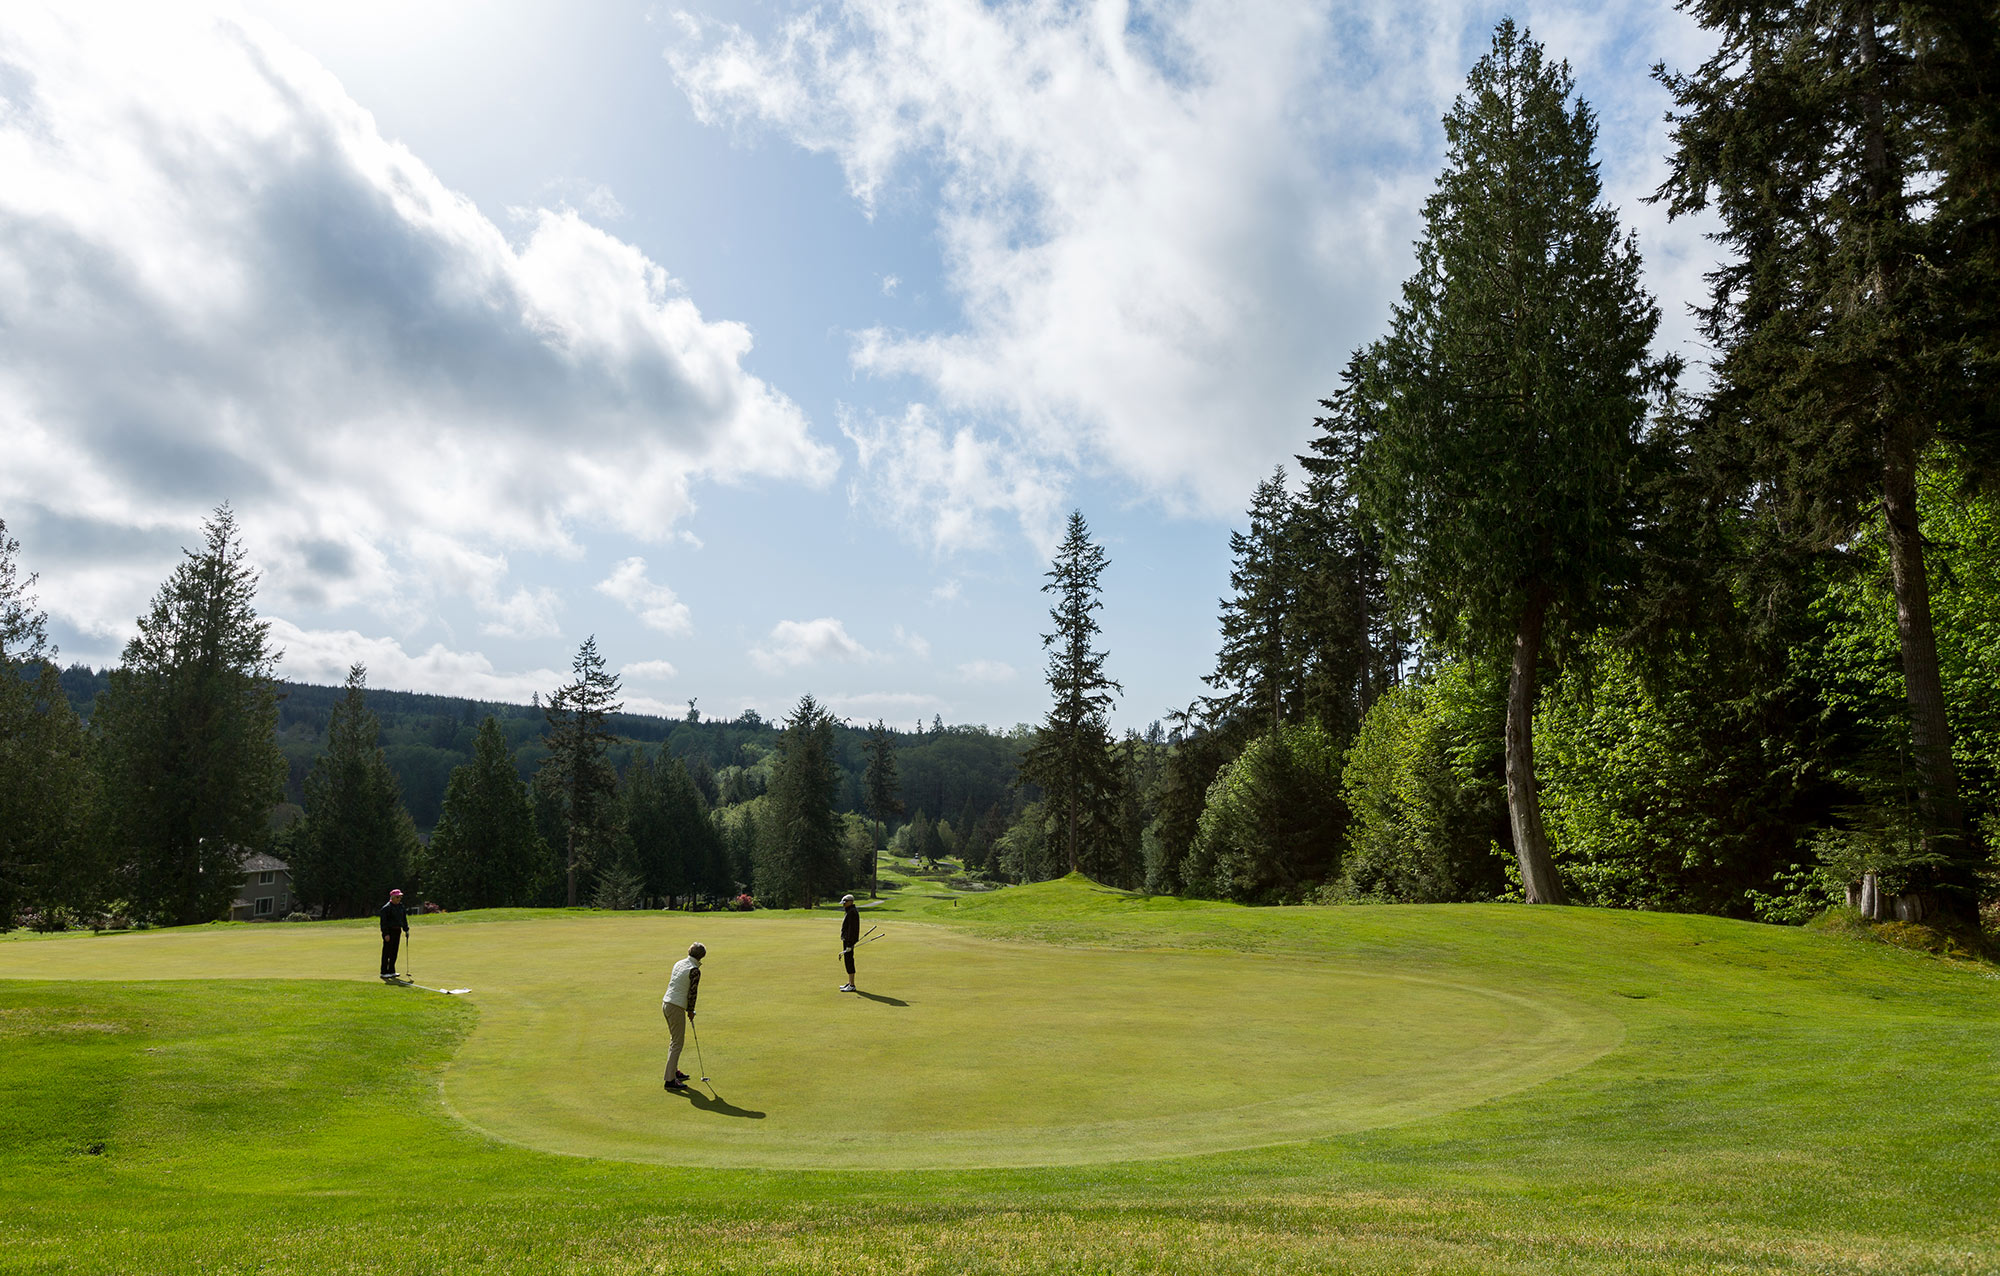 Golfers, Active Lifestyle, Resort Community, Olympic Peninsula